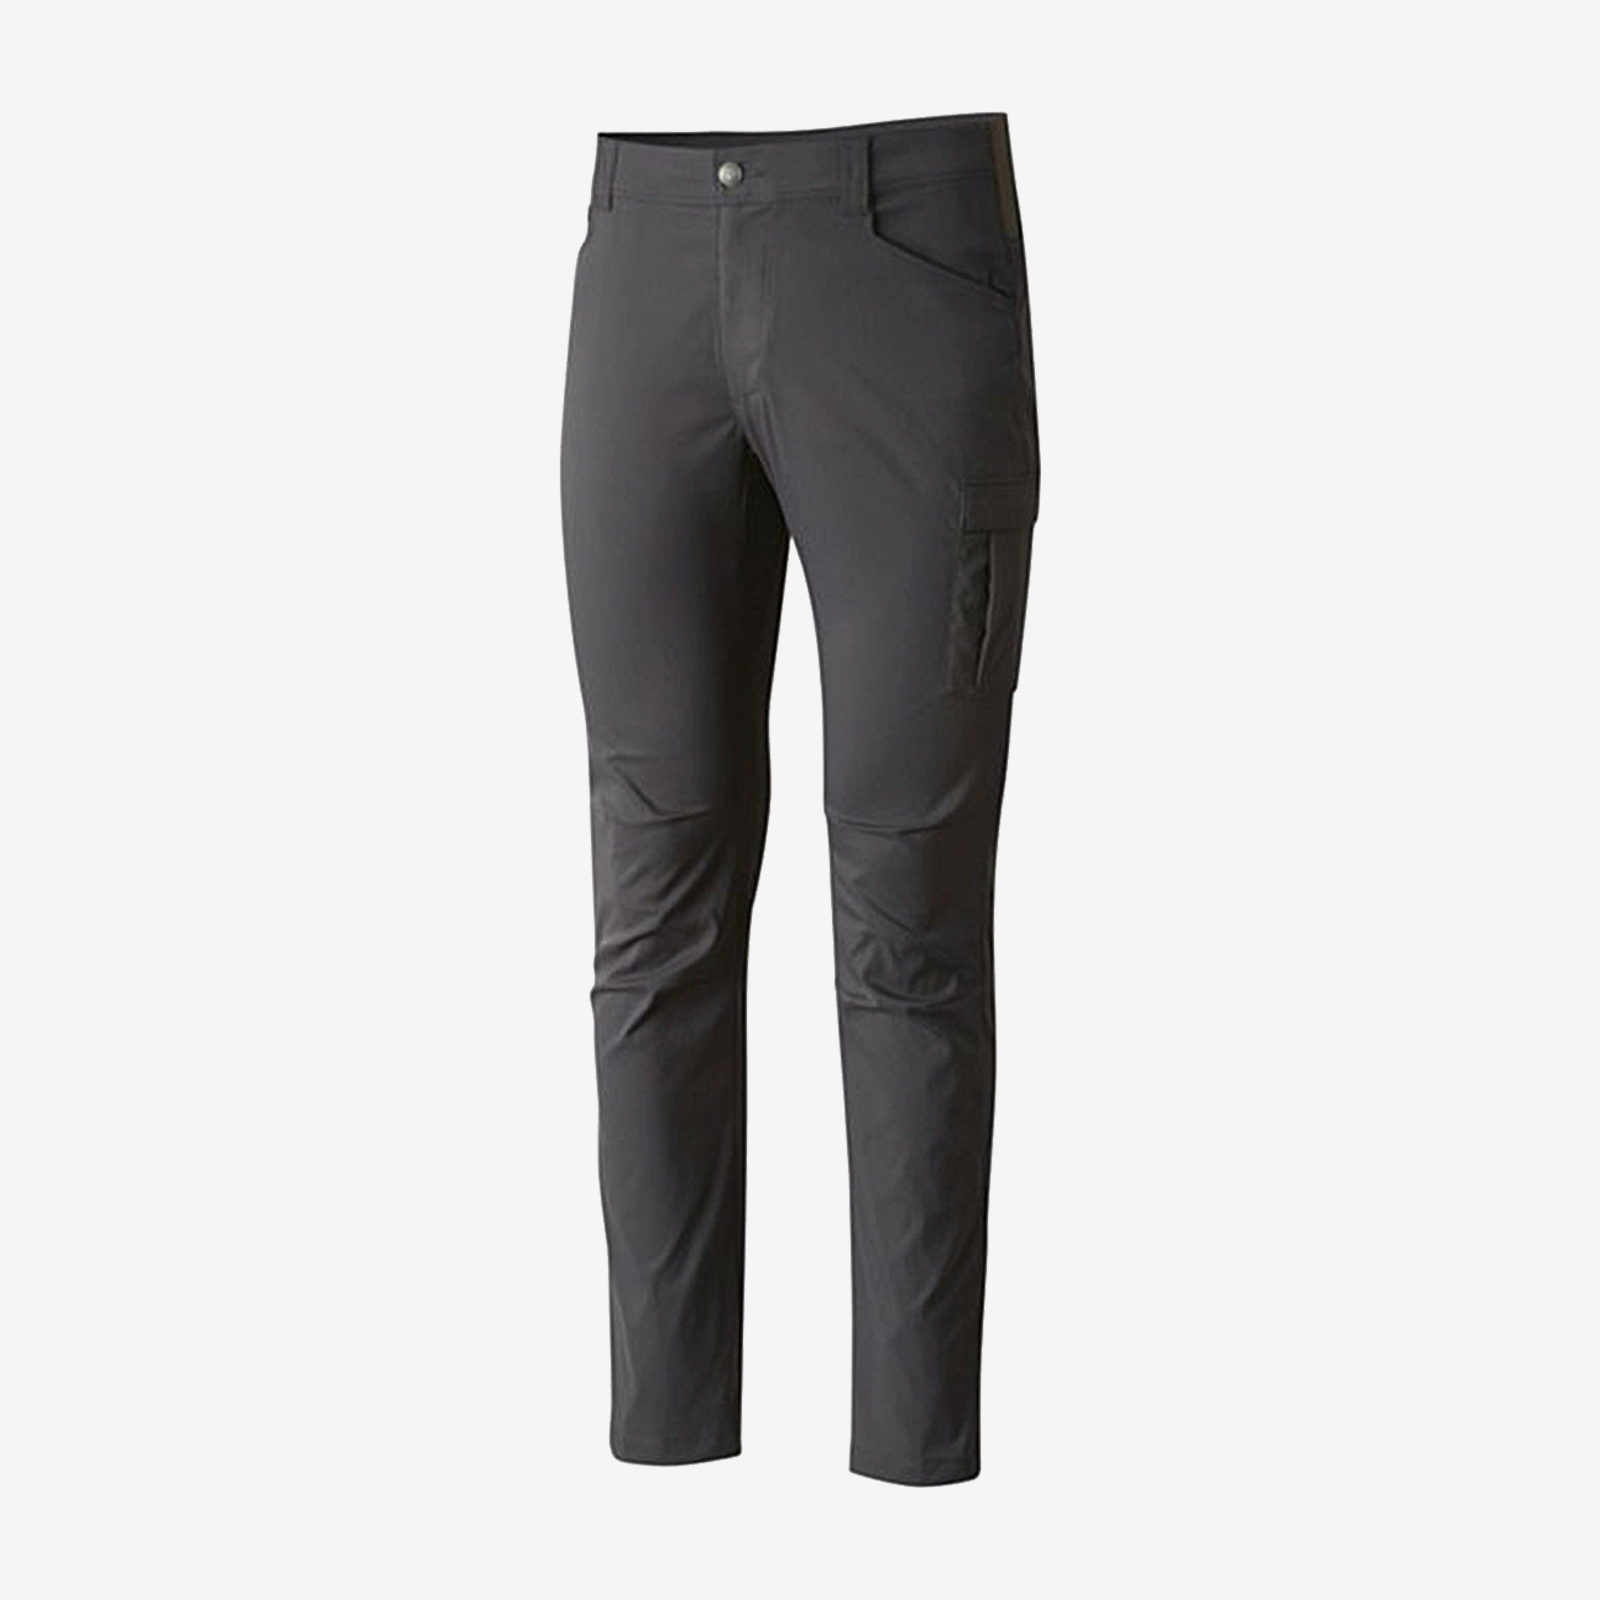 1768721-011-ao2935-outdoor-elements-stretch-pant-637016524768780761.jpg